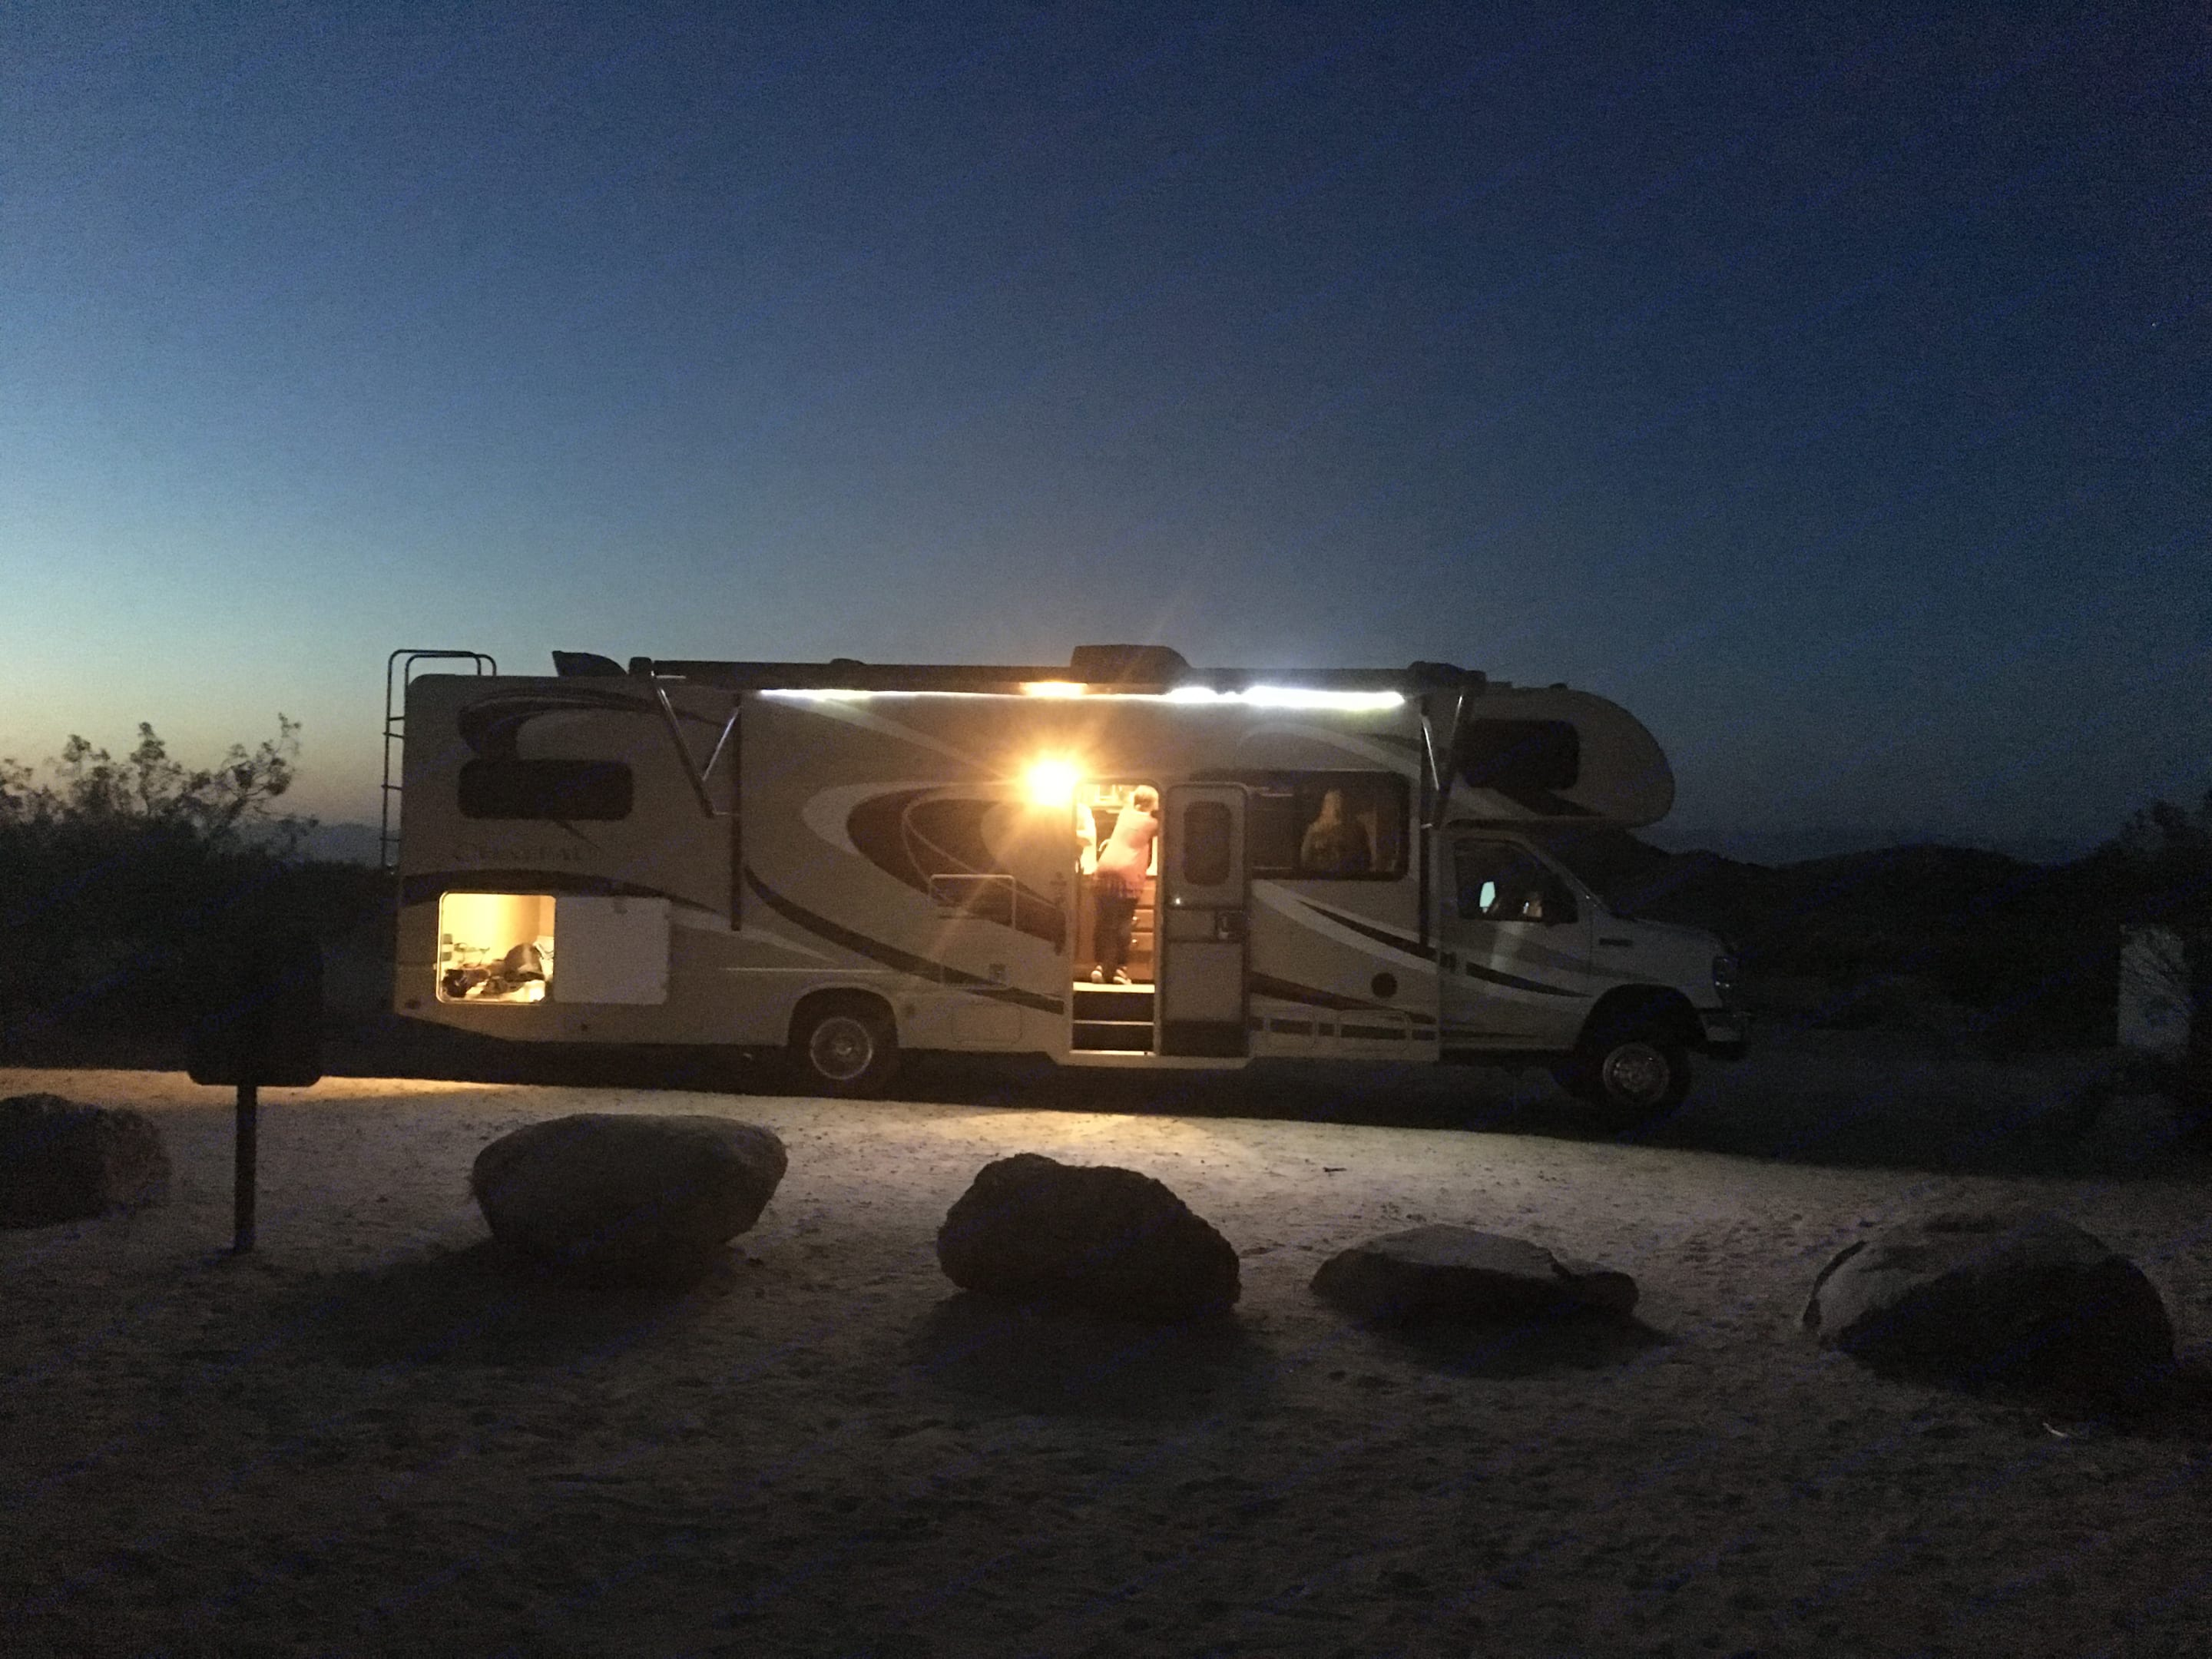 Desert camping . Thor Motor Coach Chateau 2015